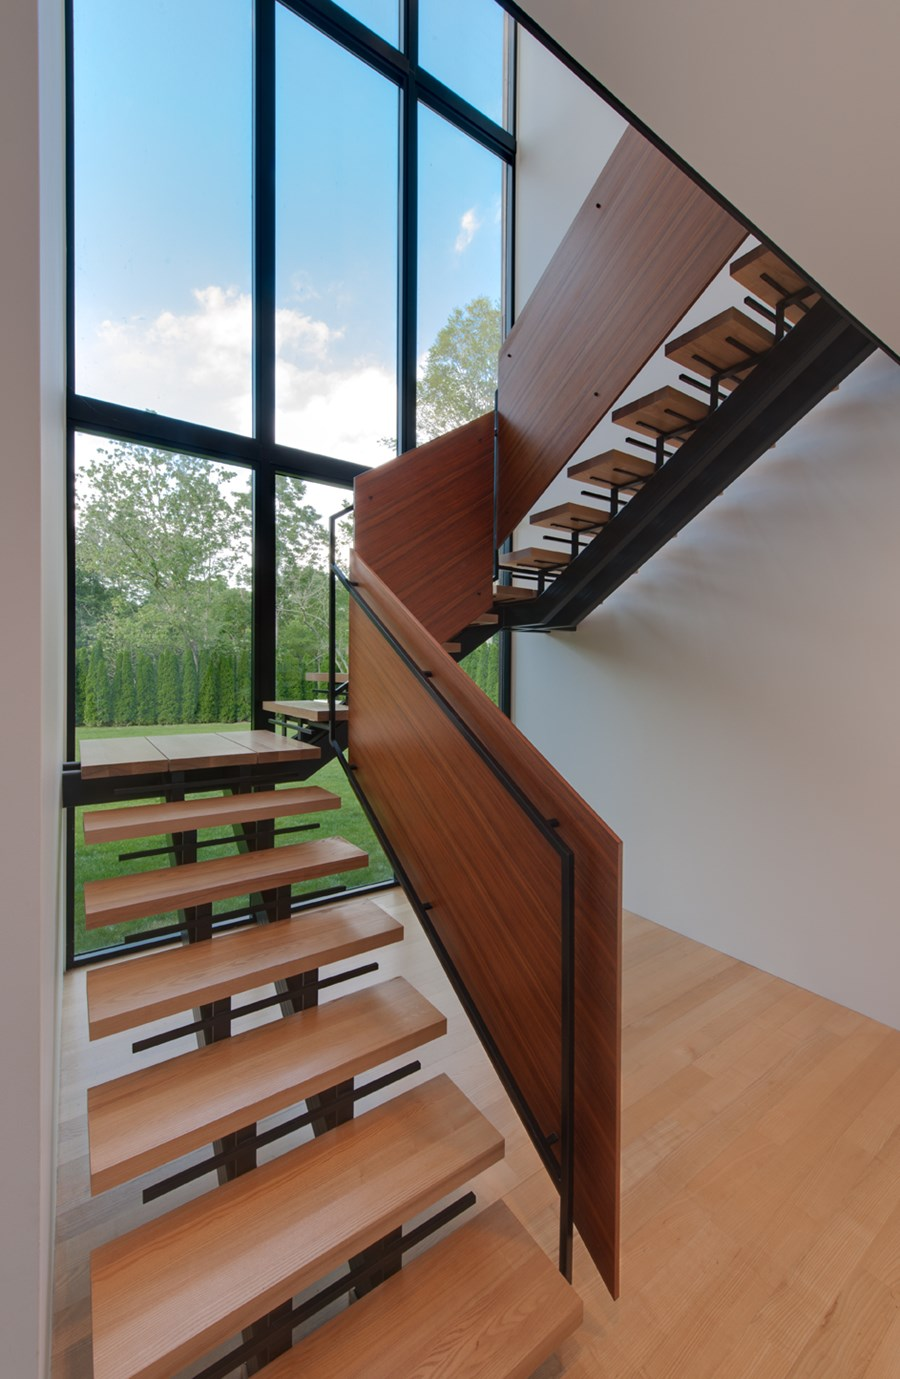 Riggins house by Robert M. Gurney, FAIA  Architect 10